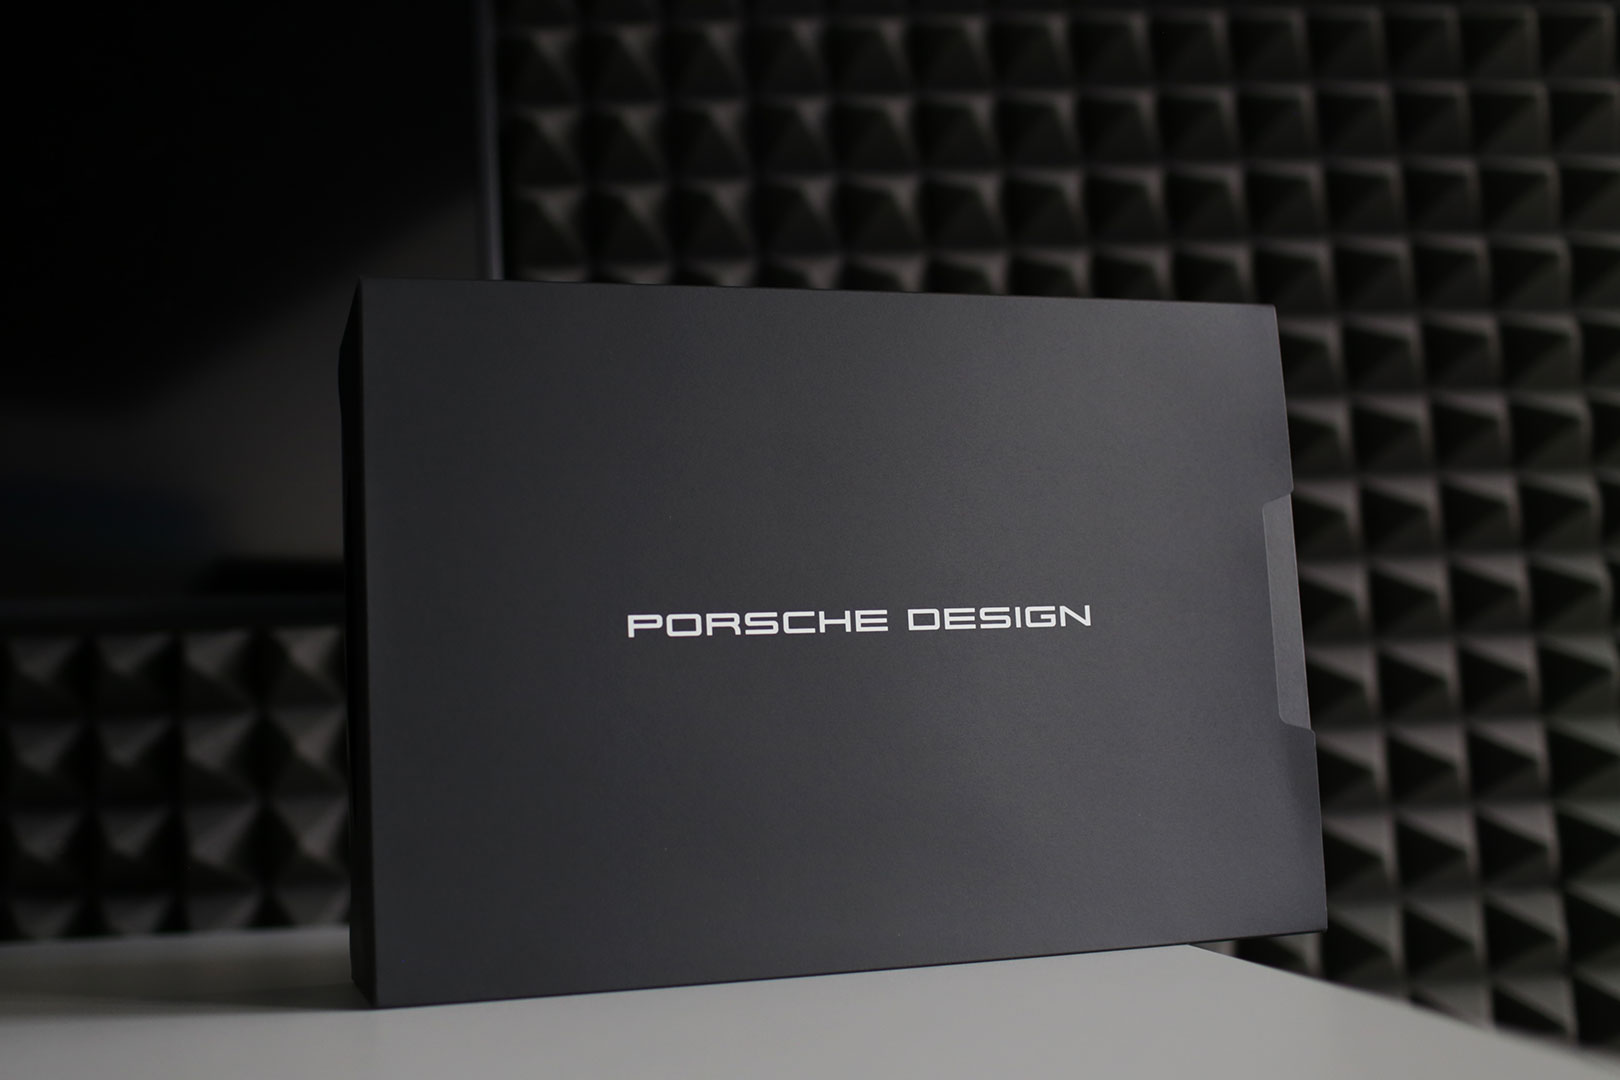 Das Porsche Design Acer Book RS